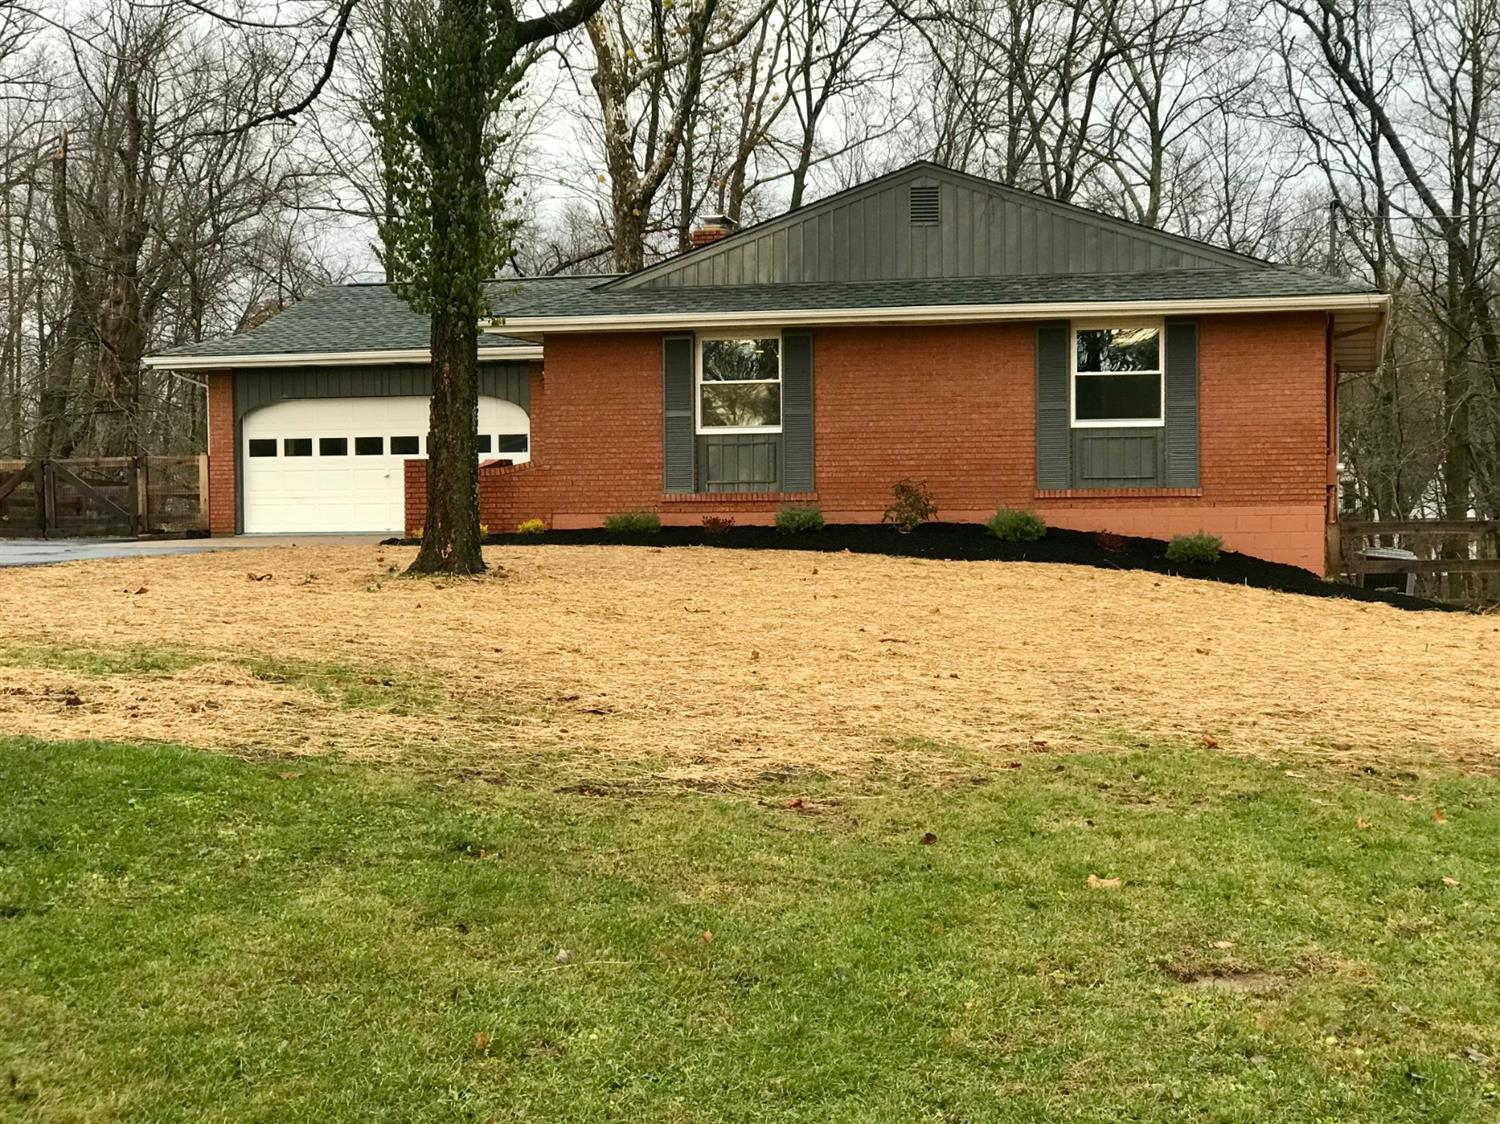 Photo 2 for 209 St Louis Dr Stonelick Twp., OH 45160